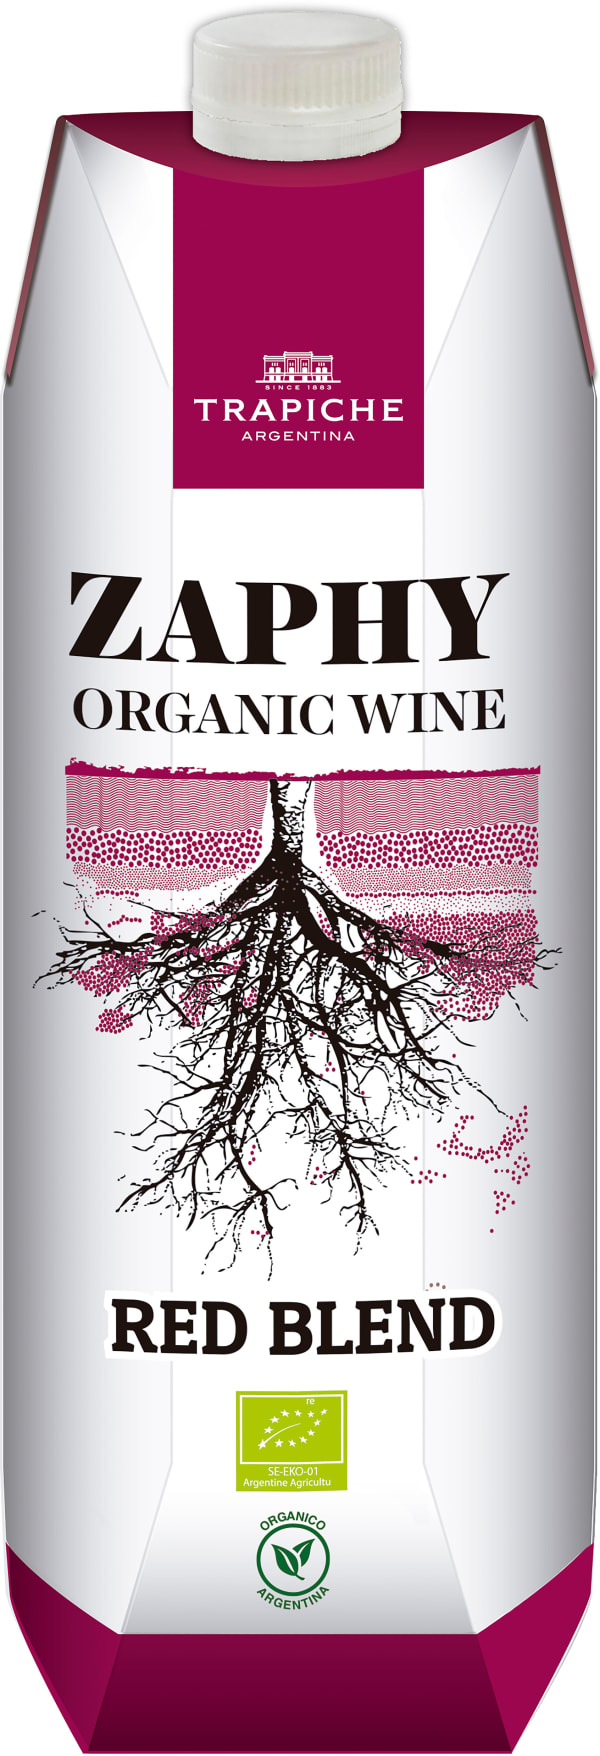 Trapiche Zaphy Red Blend 2019 carton package